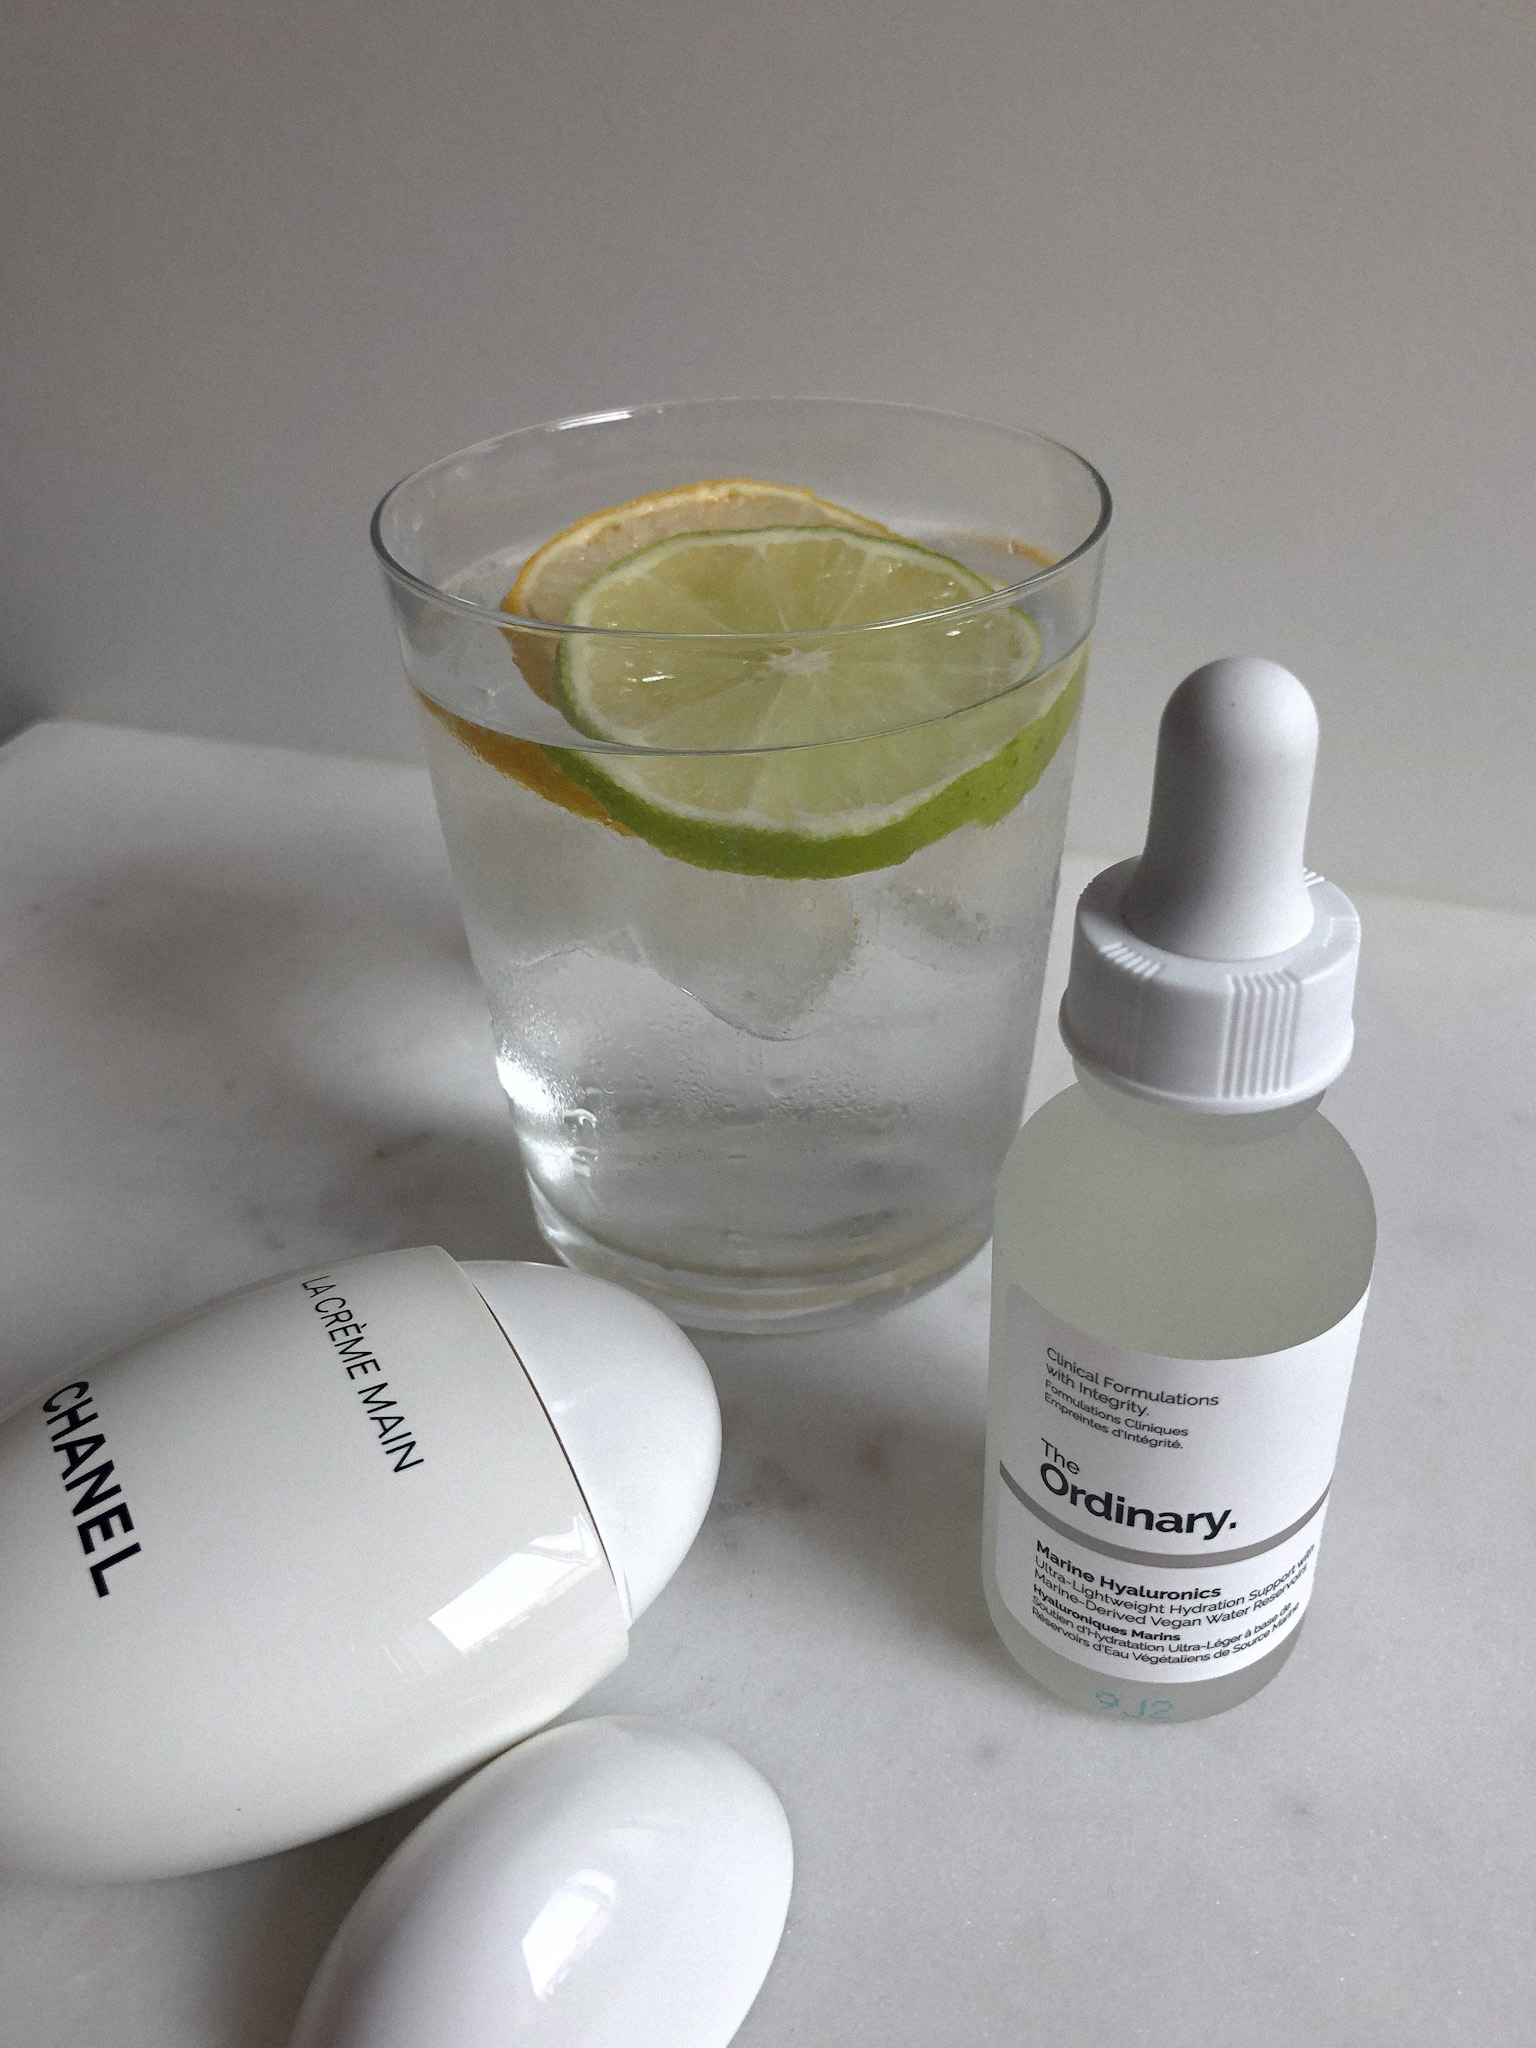 The Ordinary preporuke Marine Hyaluronics